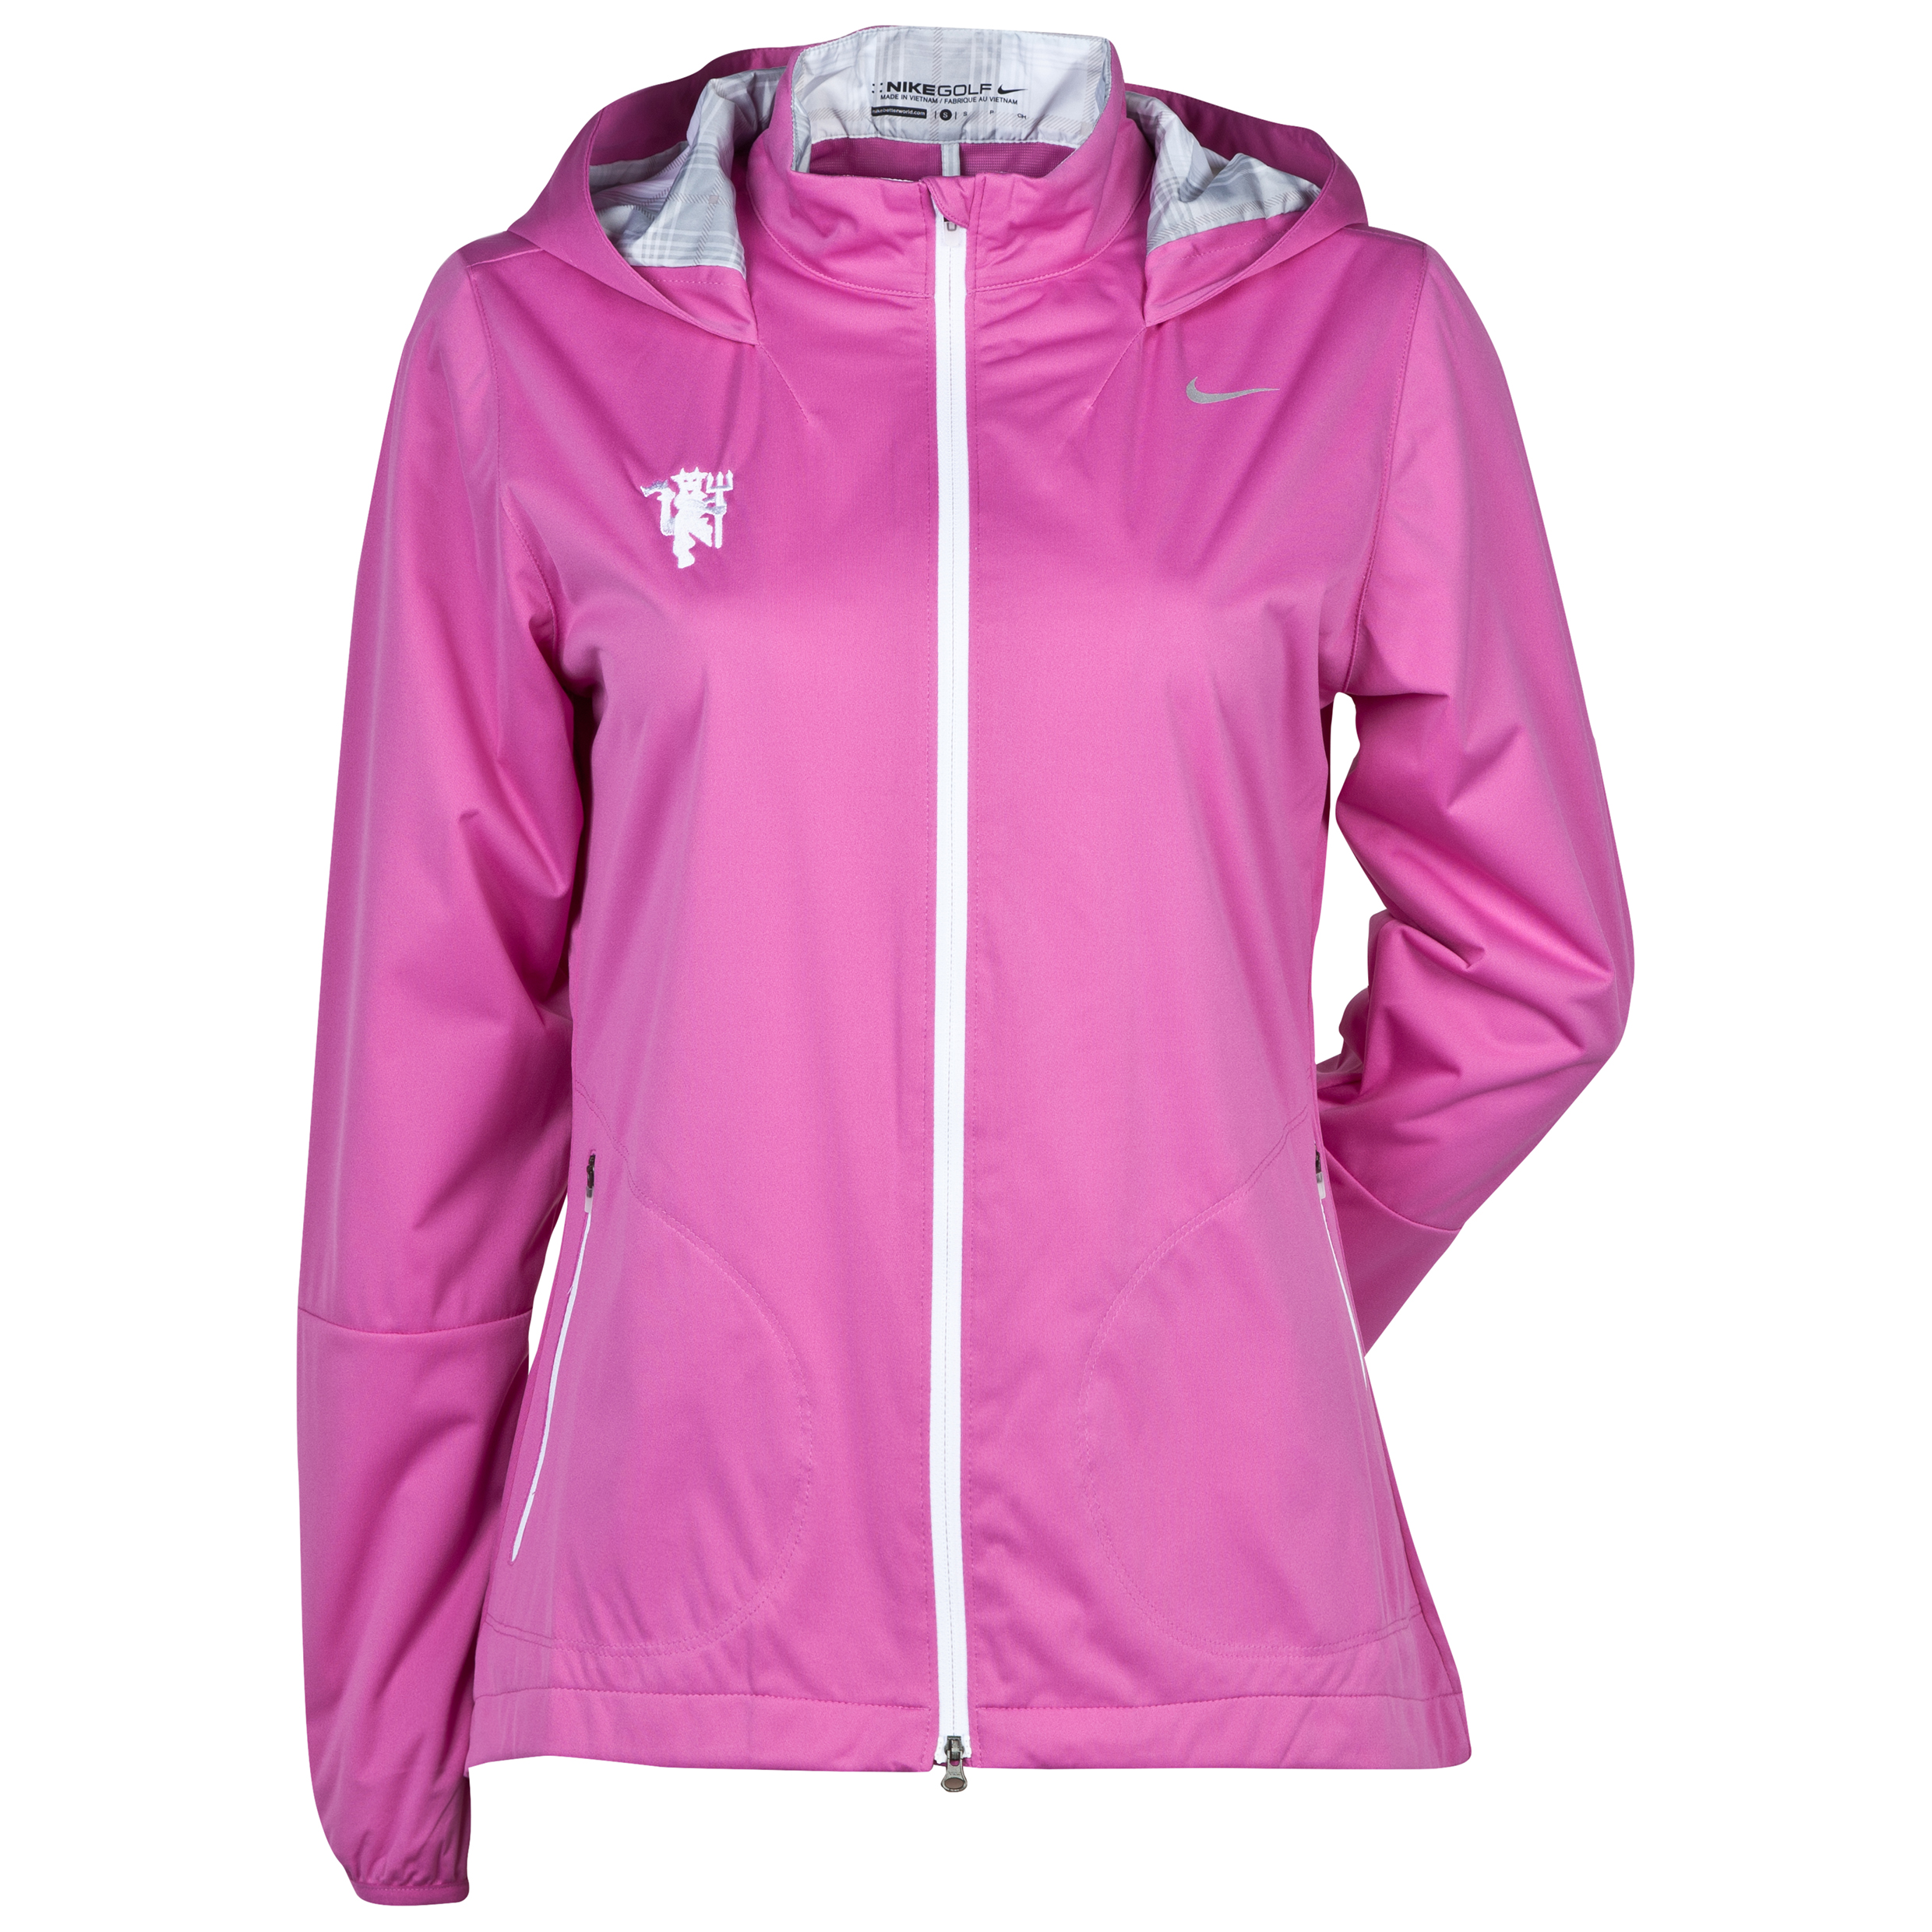 Manchester United Windproof Anorak - Club Pink/White/Metallic Silver - Womens Pink